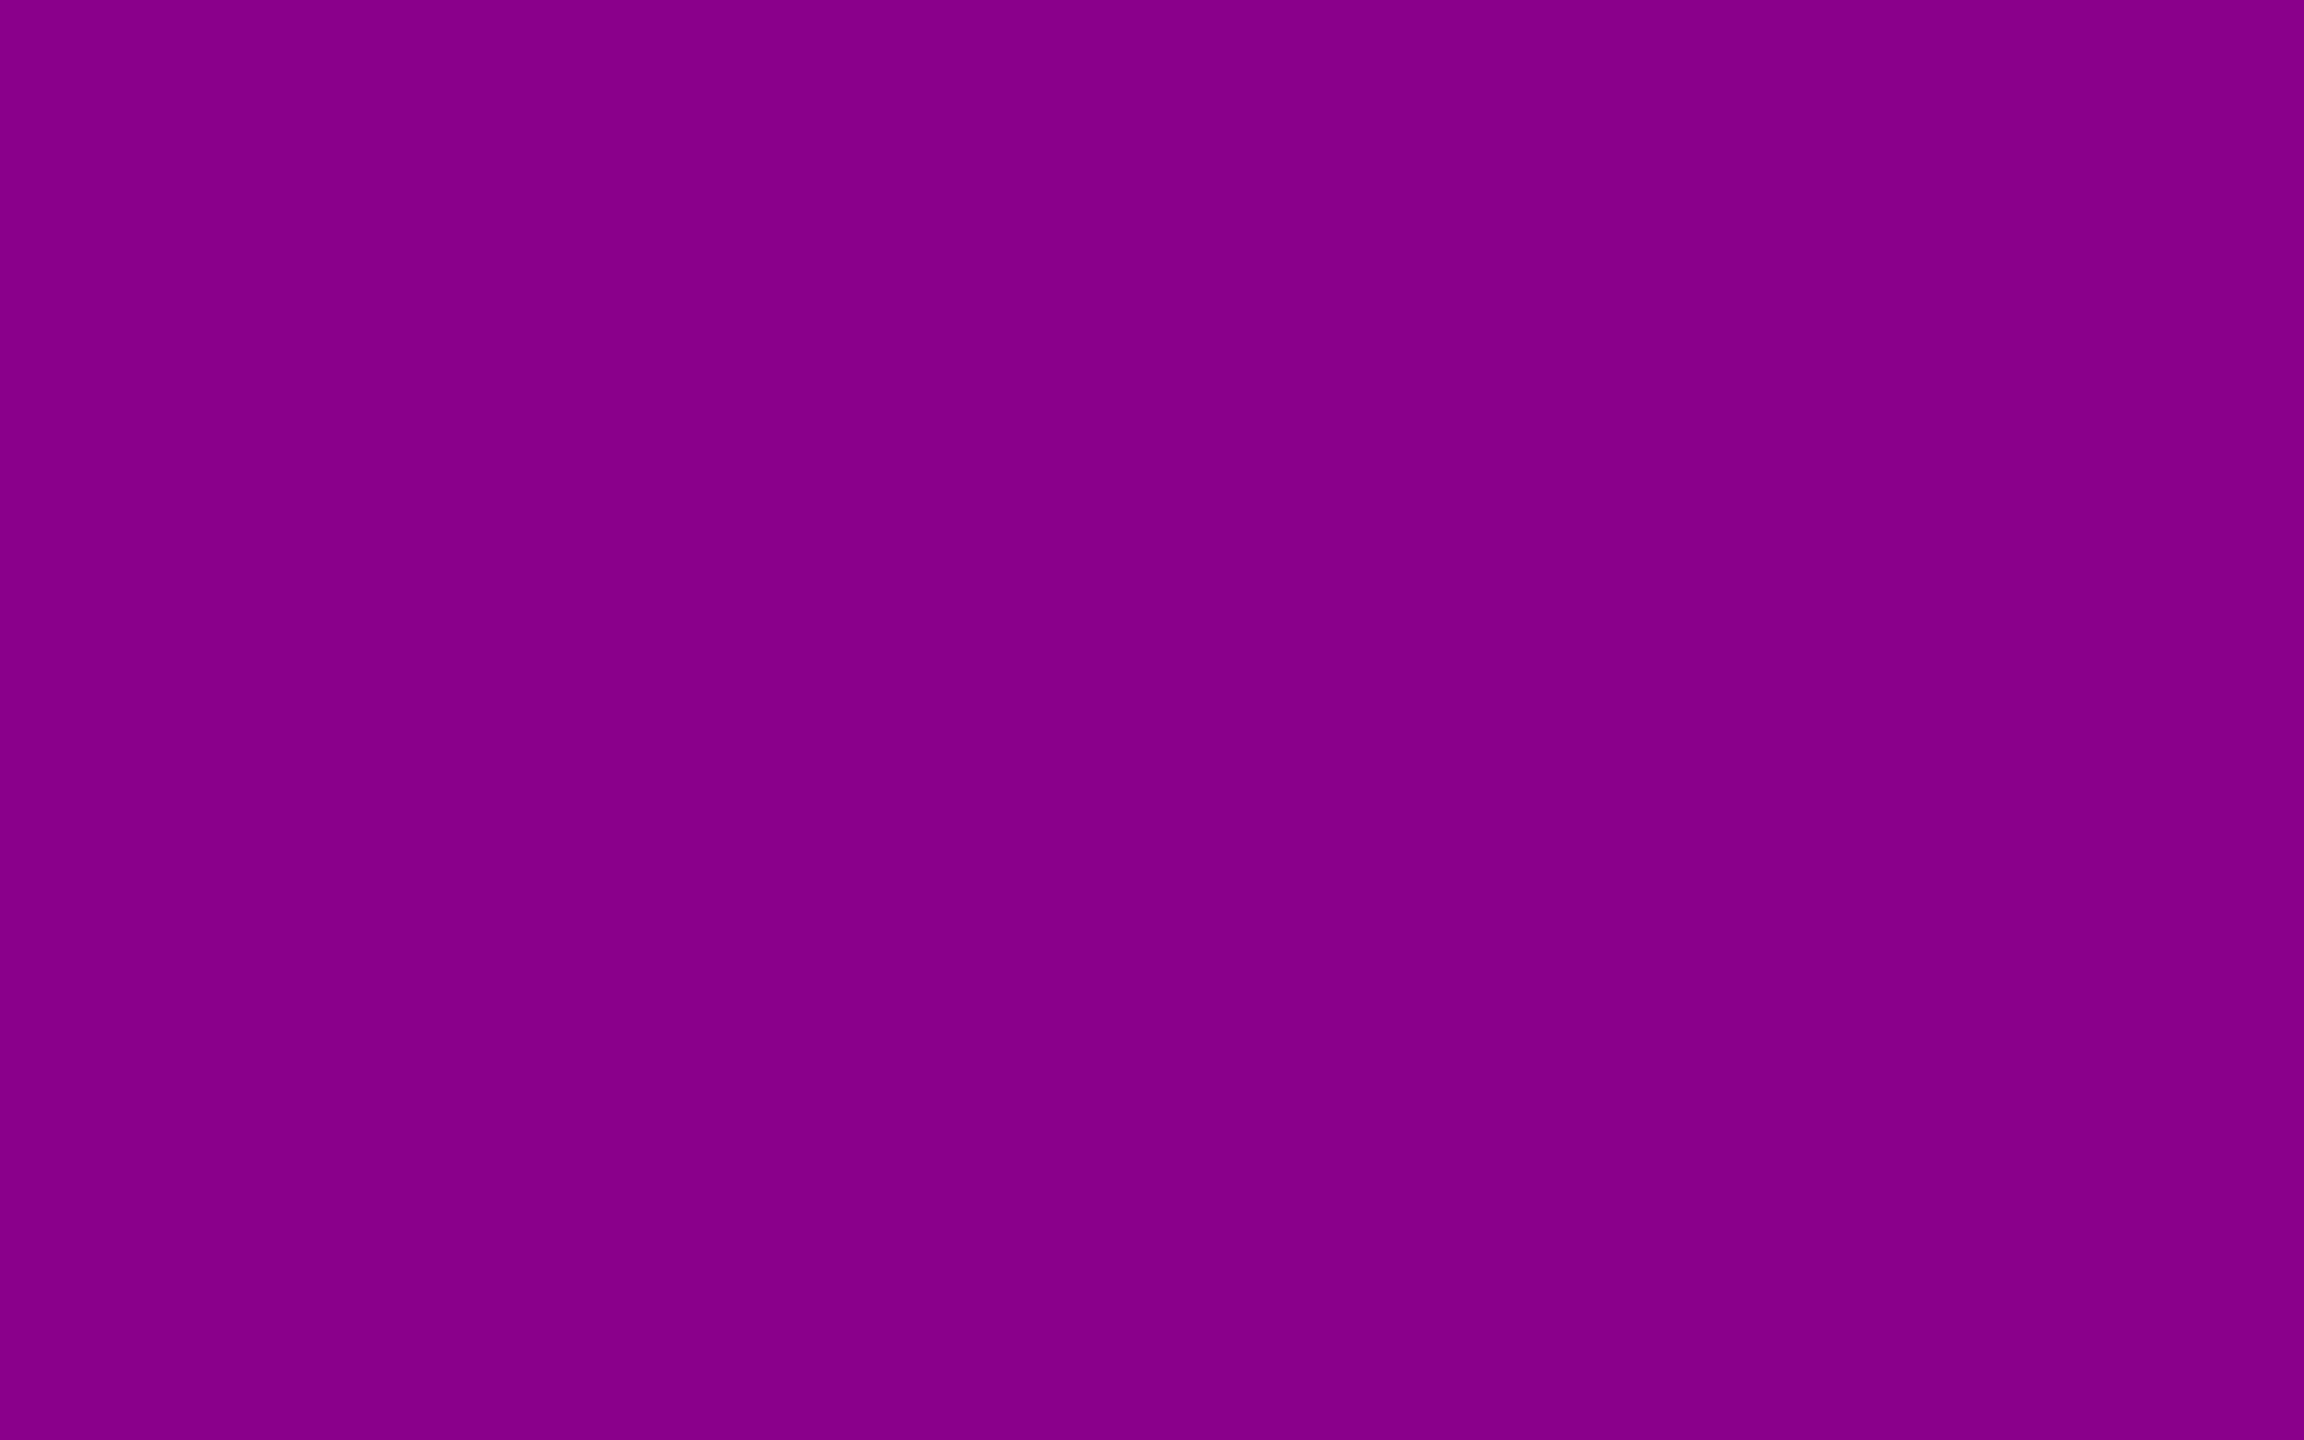 2304x1440 Dark Magenta Solid Color Background